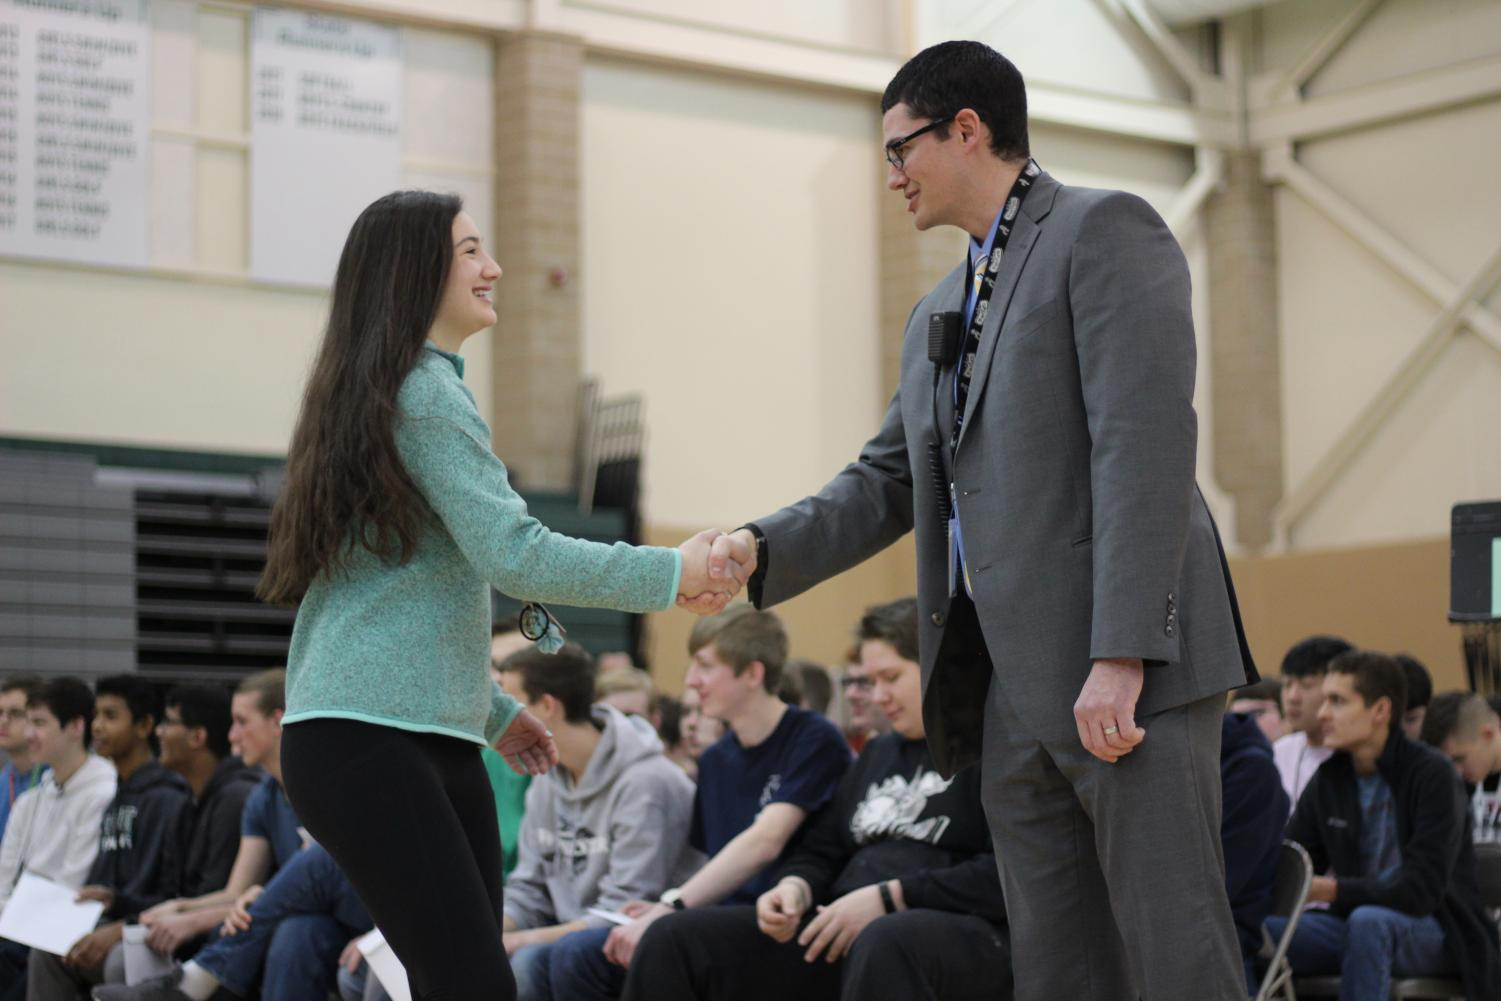 Sophomore Ava Spinar shakes Principal Michael Gillotti's hand during Honors Convocation on Thursday, Feb. 21.